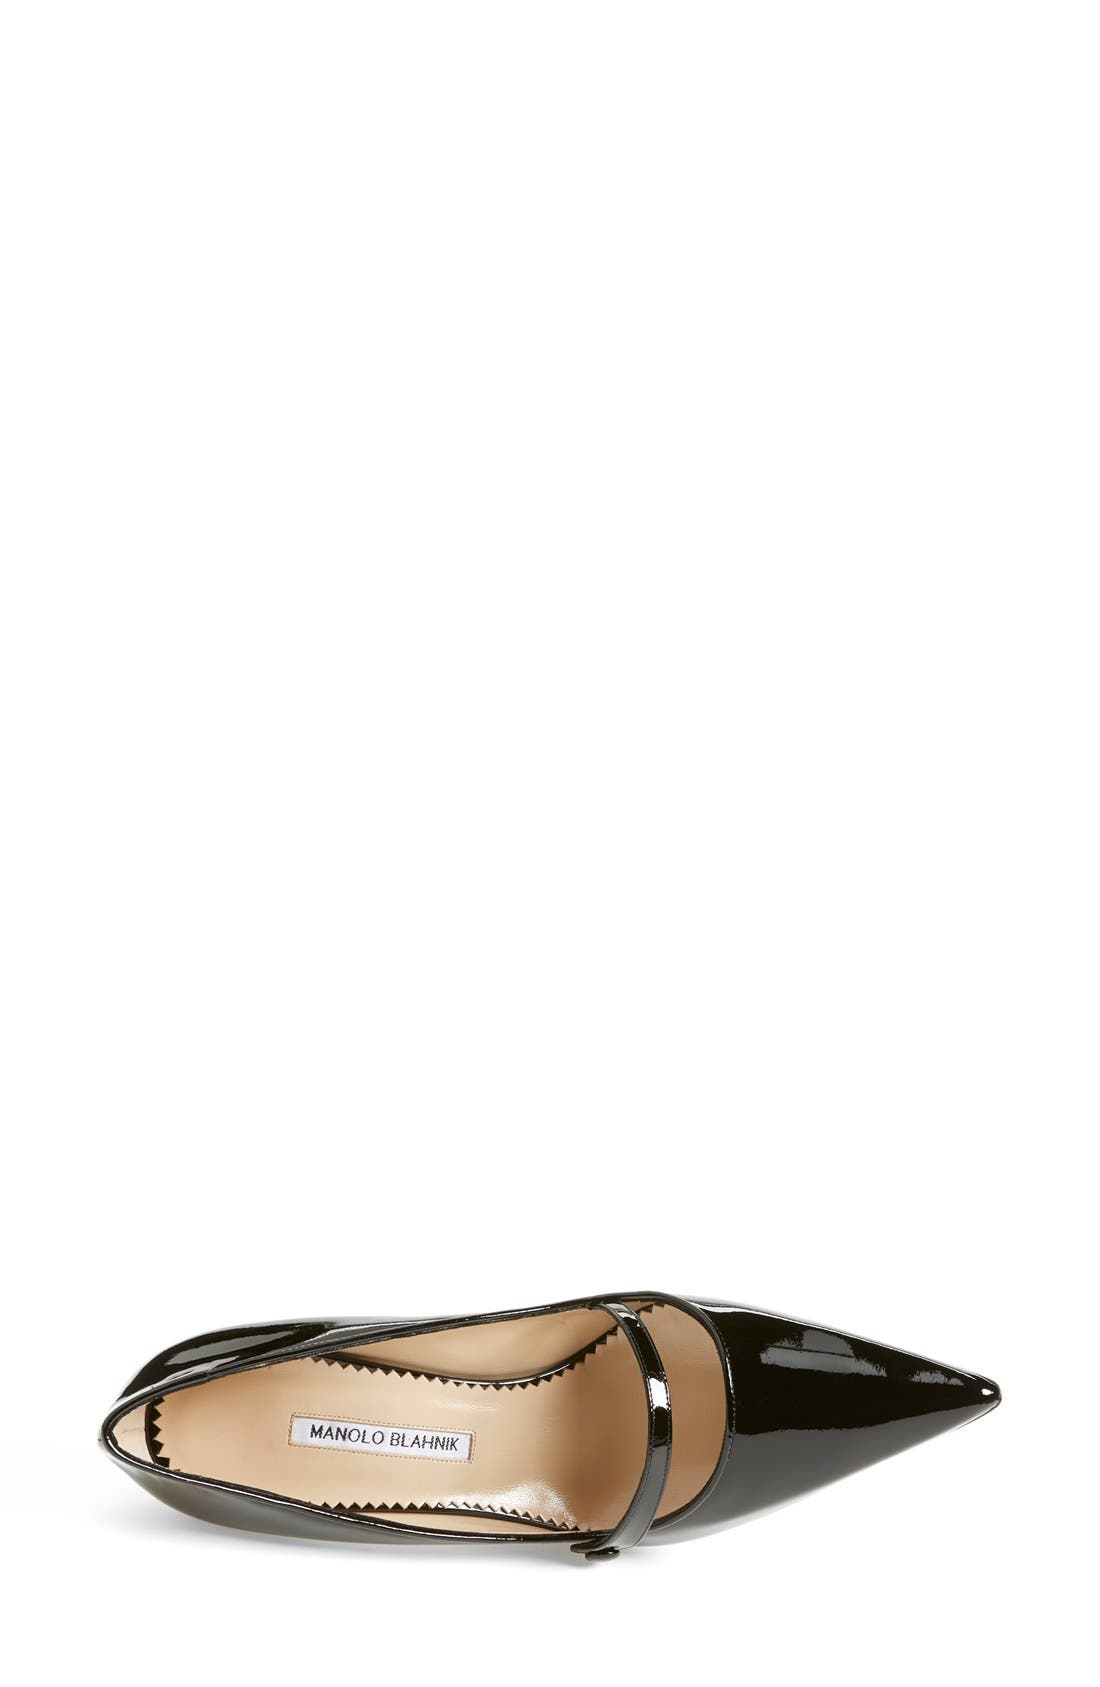 Alternate Image 3  - Manolo Blahnik 'Mladari' Mary Jane Pump (Women)